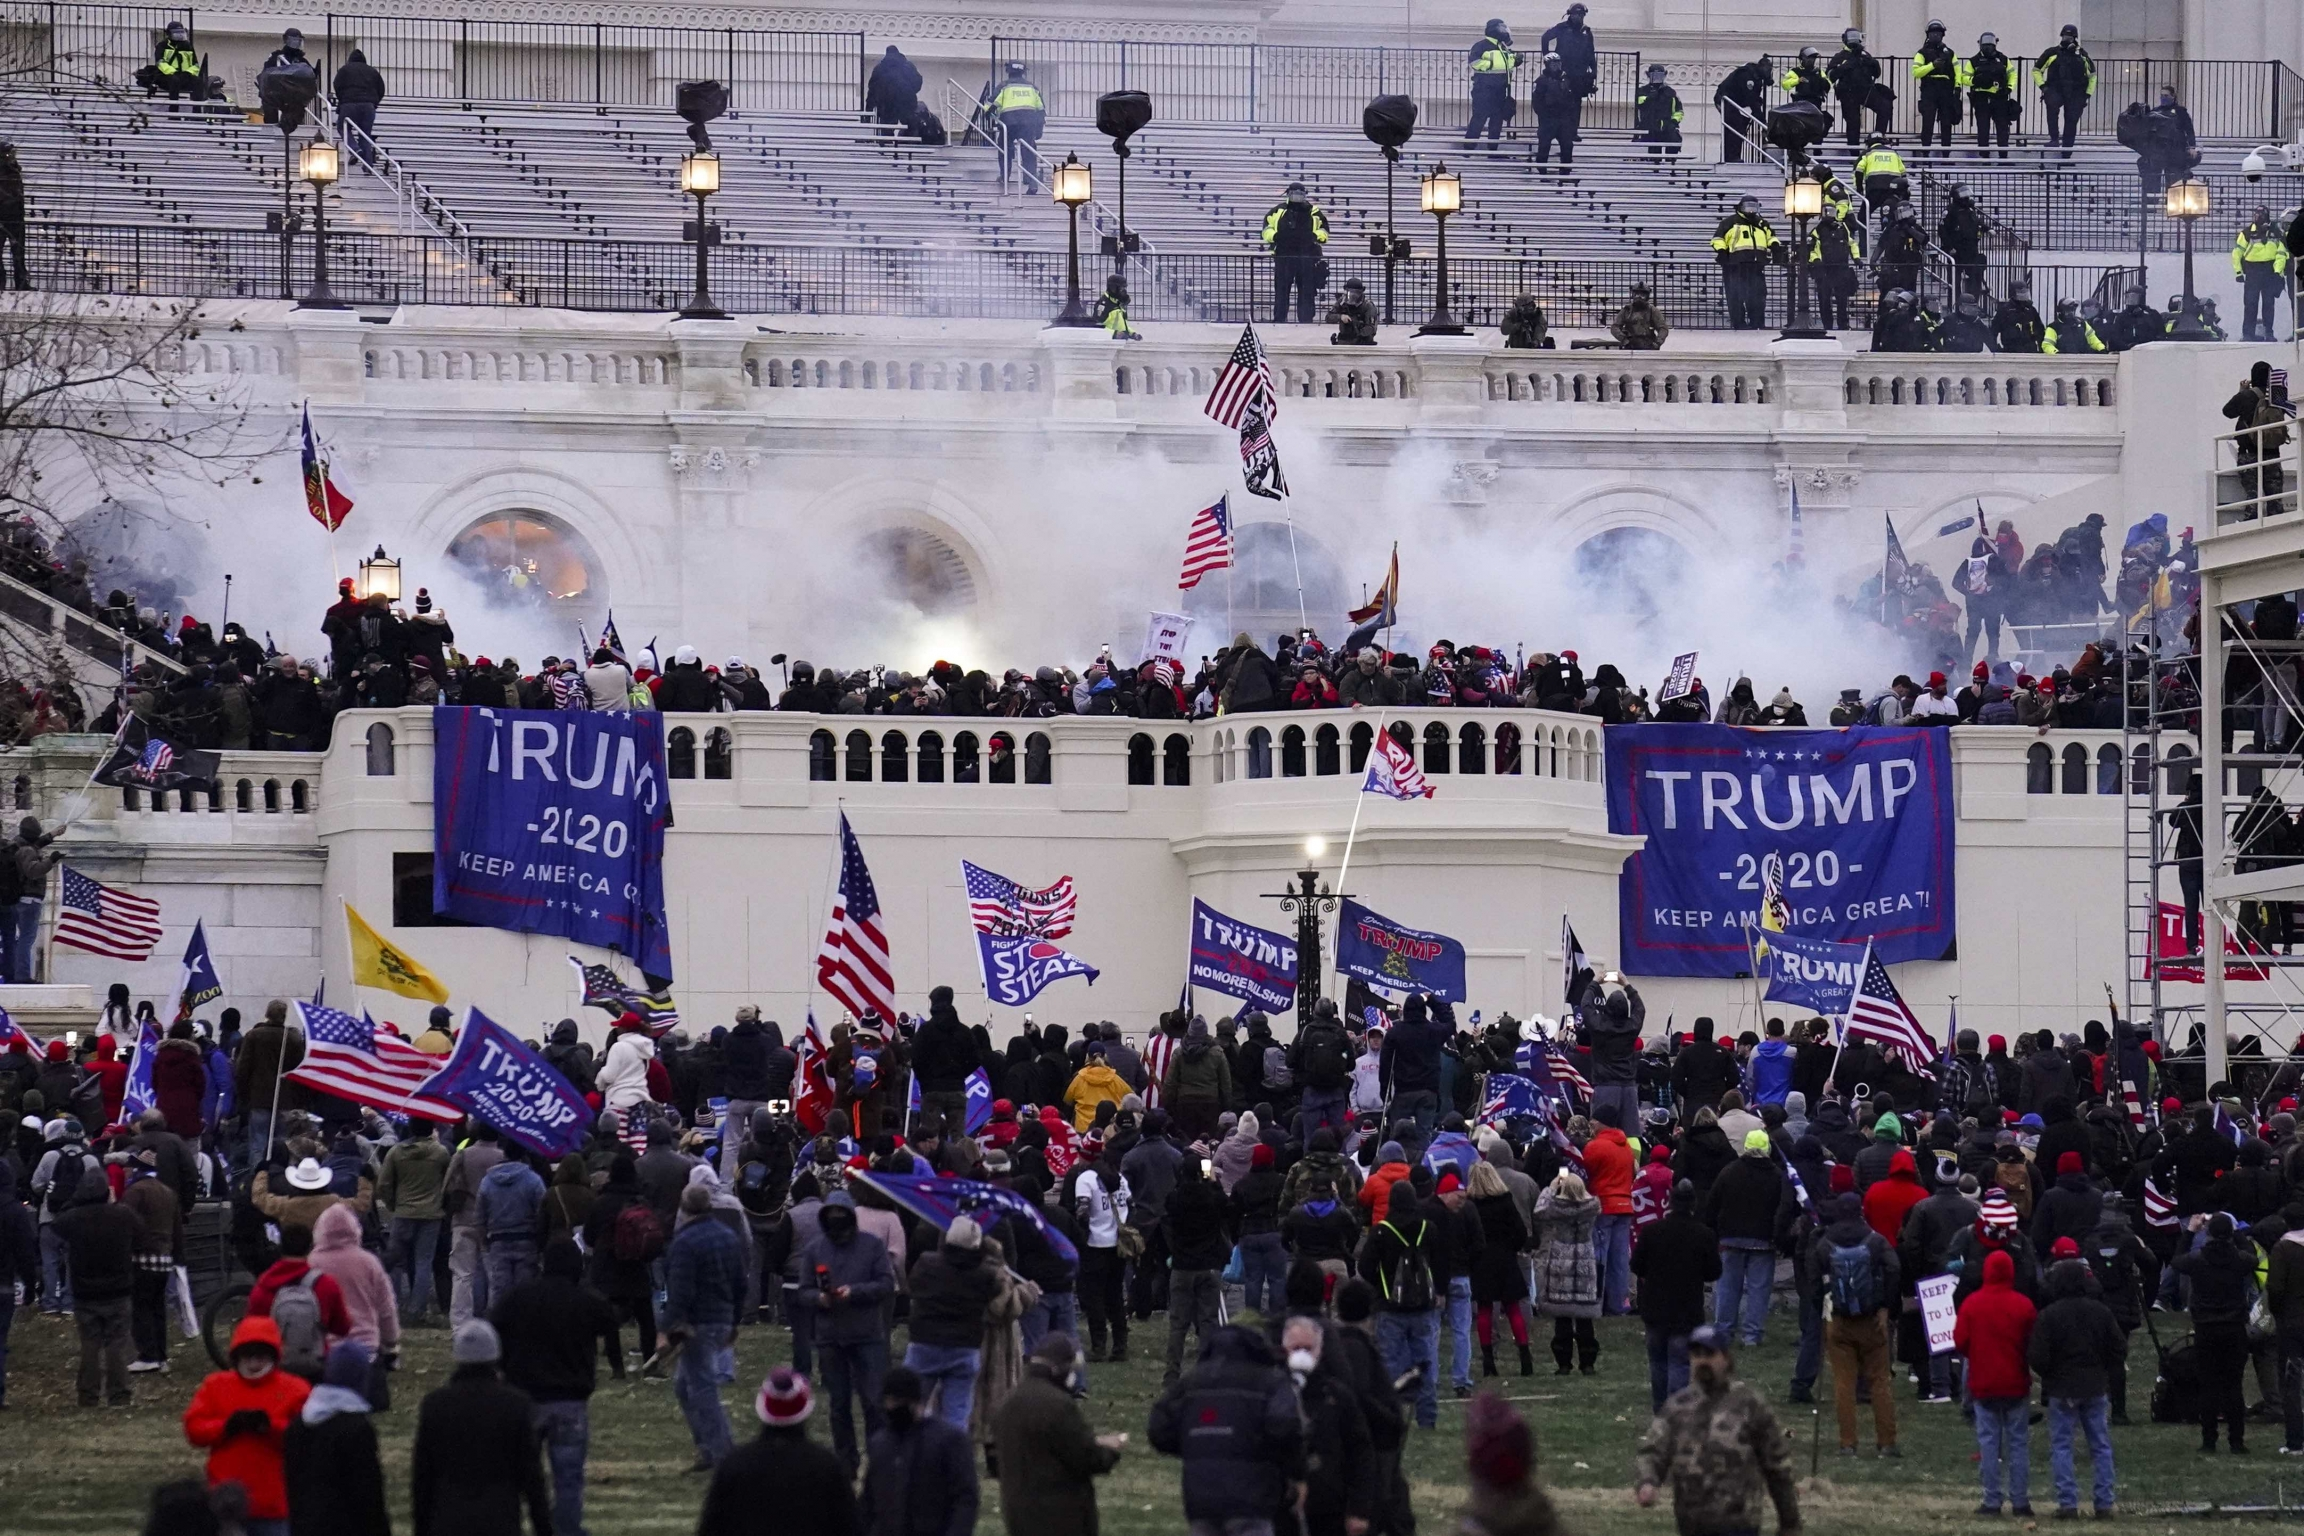 A large group of people with flags that read Tump storm the US Capitol building.